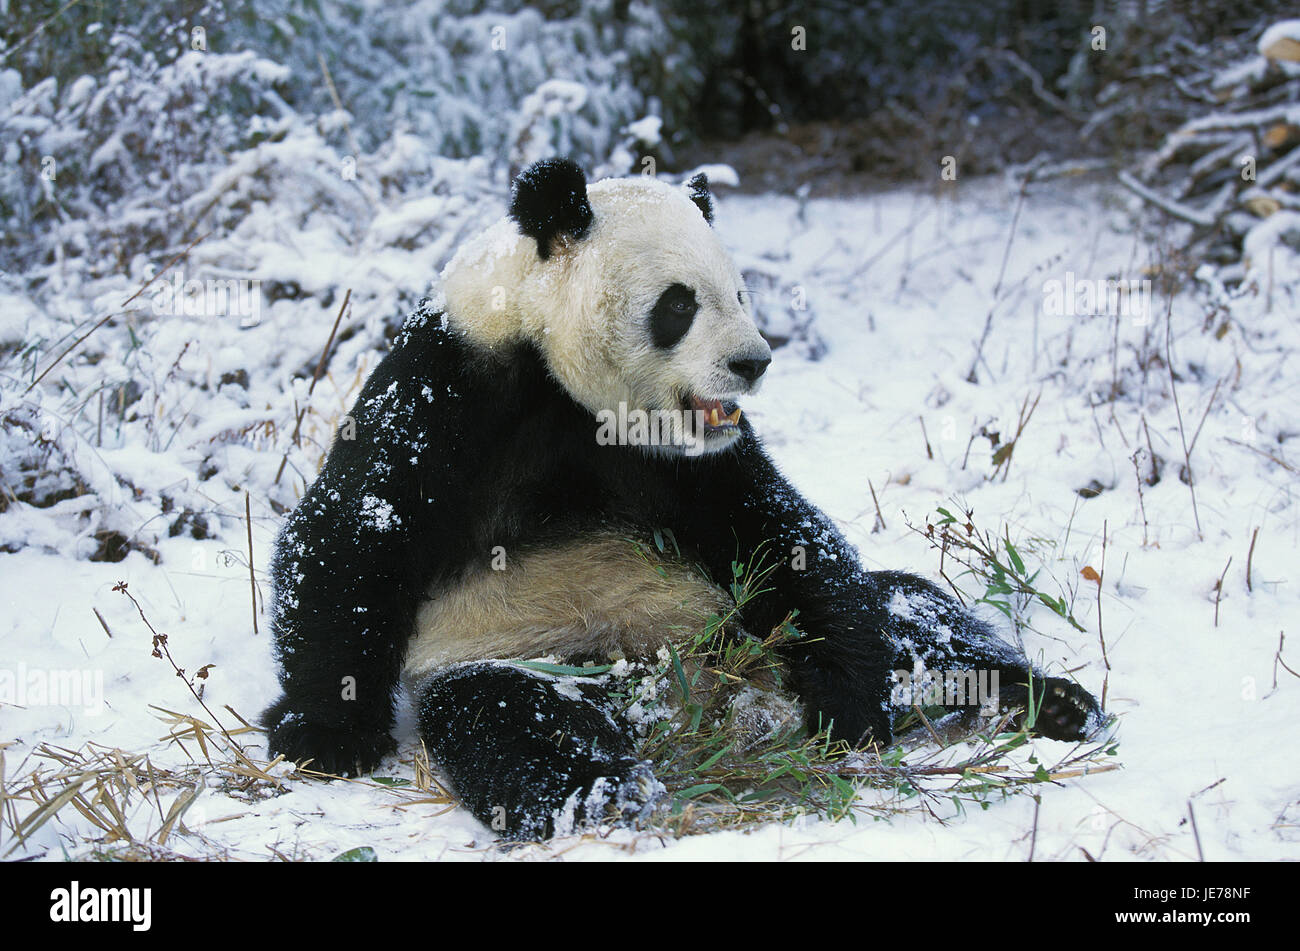 Big Panda Ailuropoda melanoleuca, adulte, animal, manger, bambou, Daliang, Chine, Photo Stock